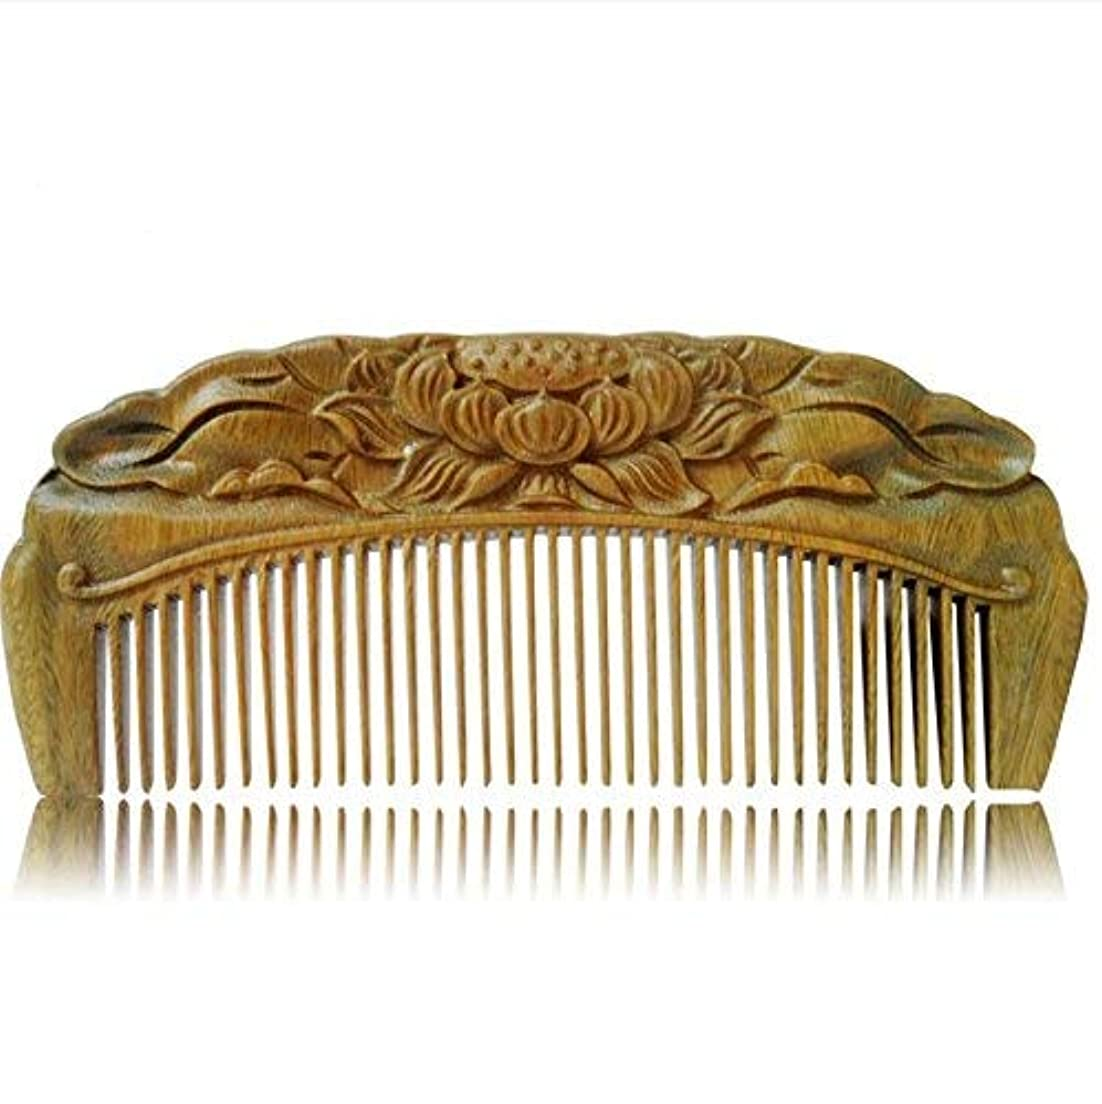 減る実験室ランドリーHandmade Carved Natural Sandalwood Hair Comb - Anti-static Sandalwood Hair Comb Beard Brush Rake Comb Handmade...